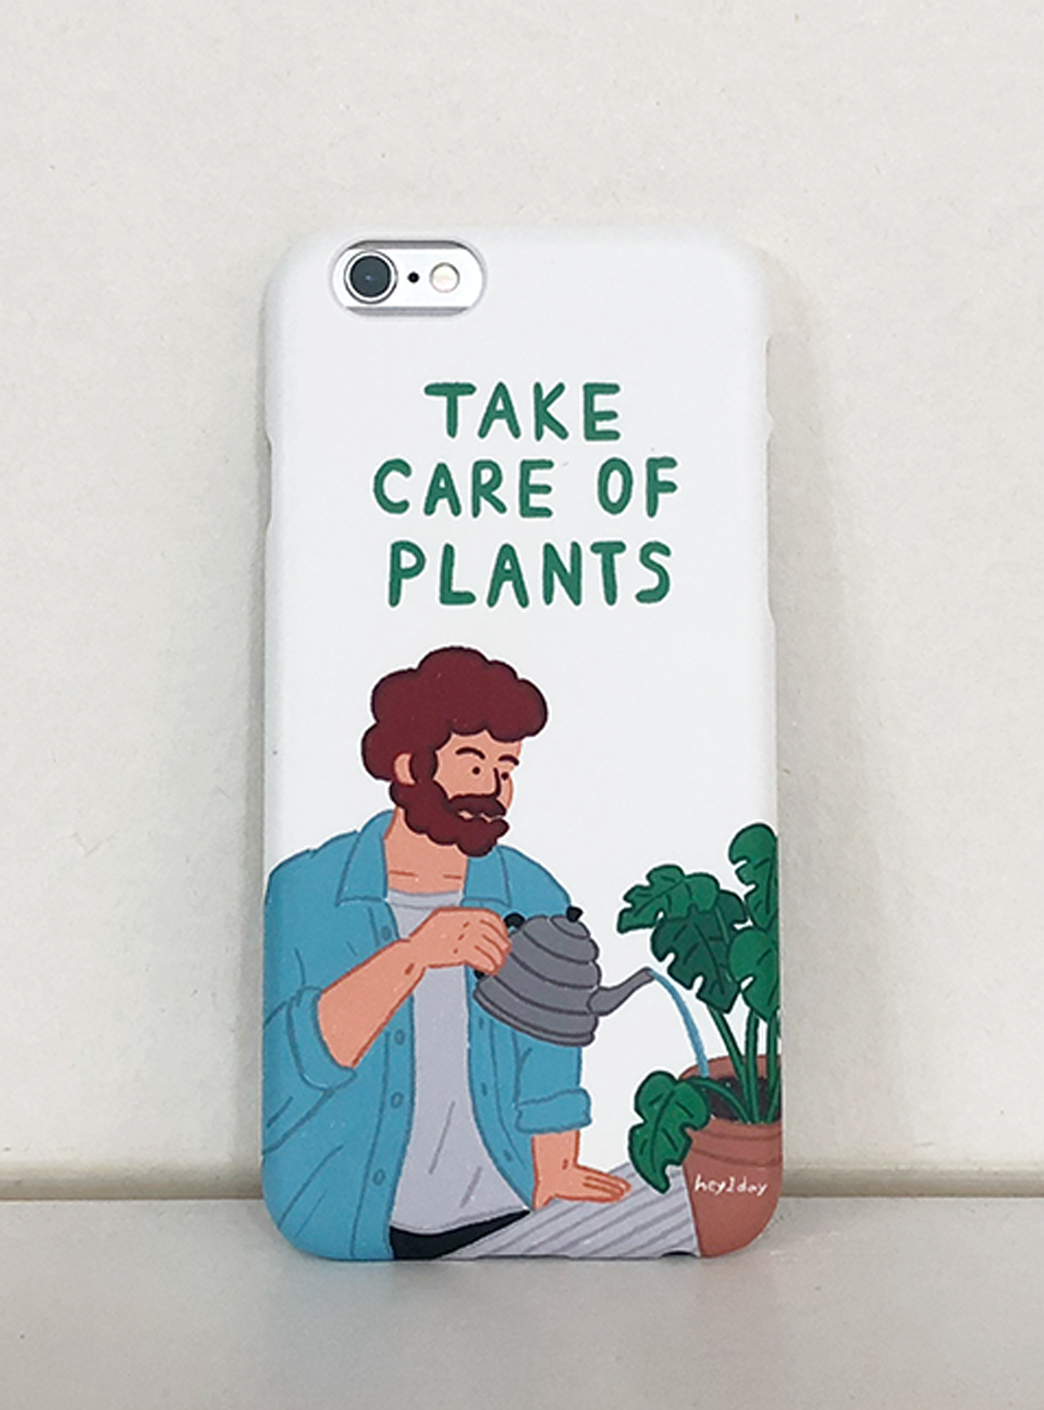 take care of plants 하드케이스